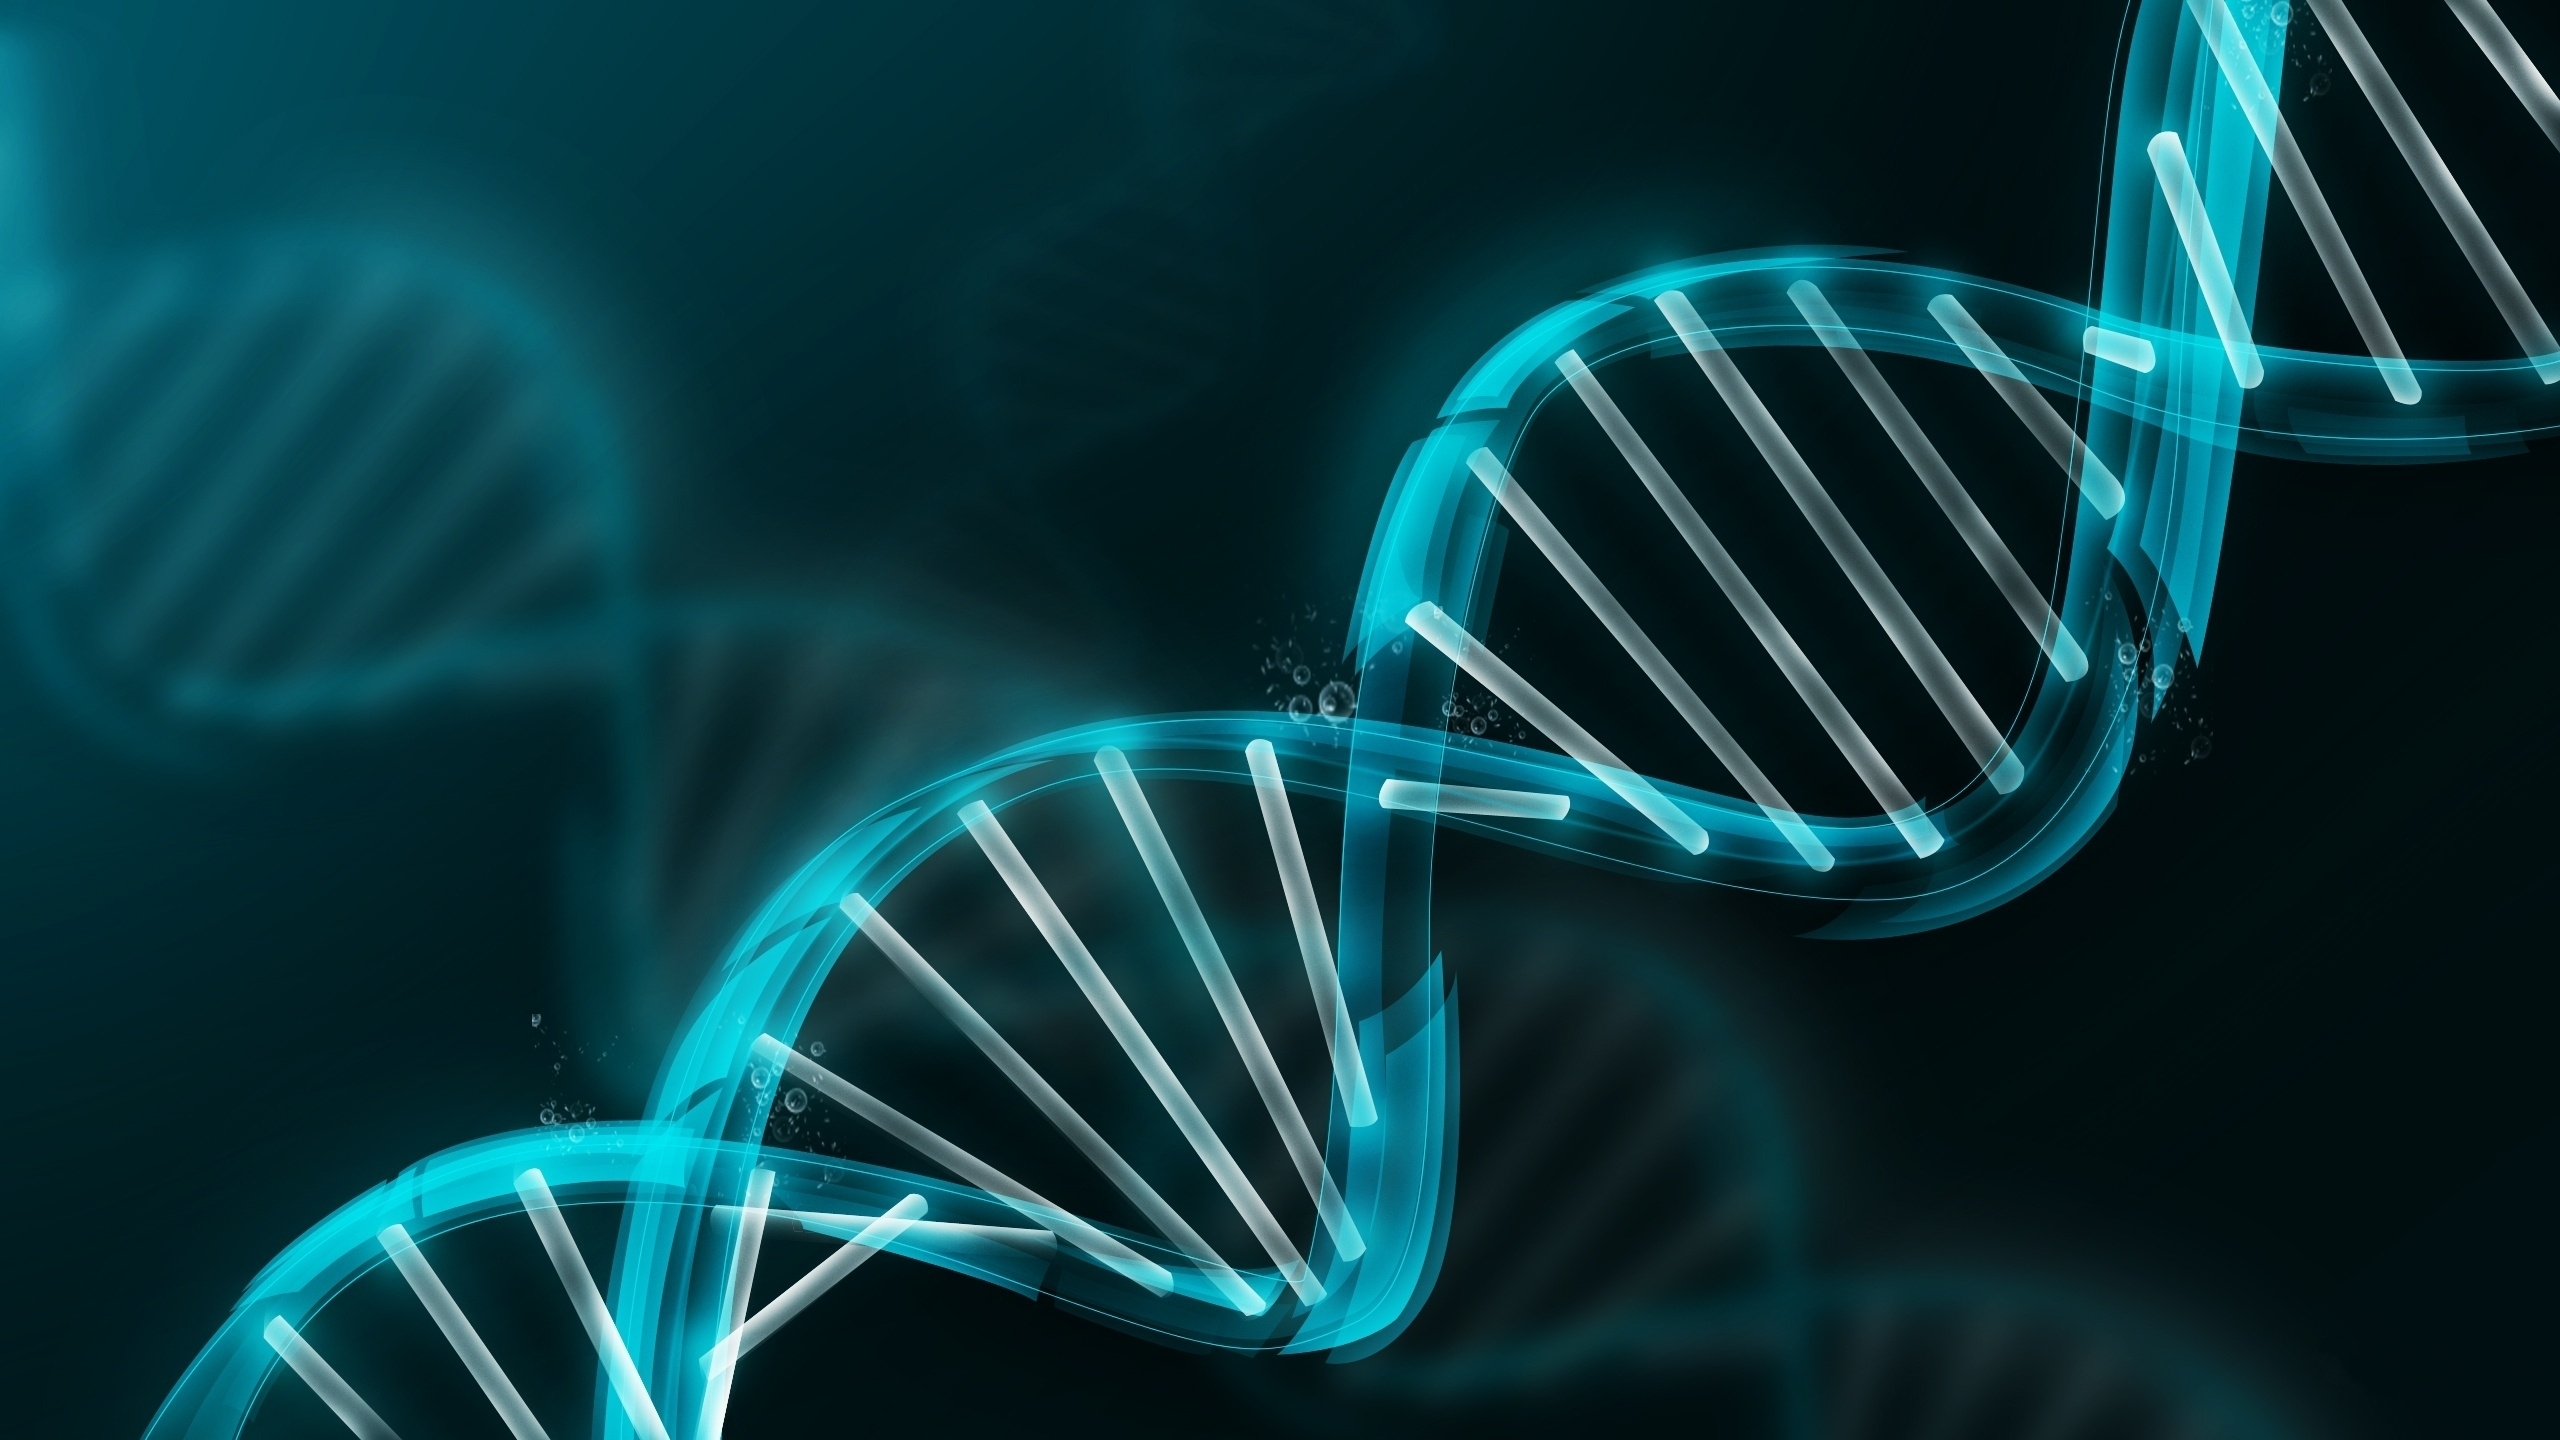 10 Best Dna Wallpaper High Resolution FULL HD 1920×1080 For PC Background